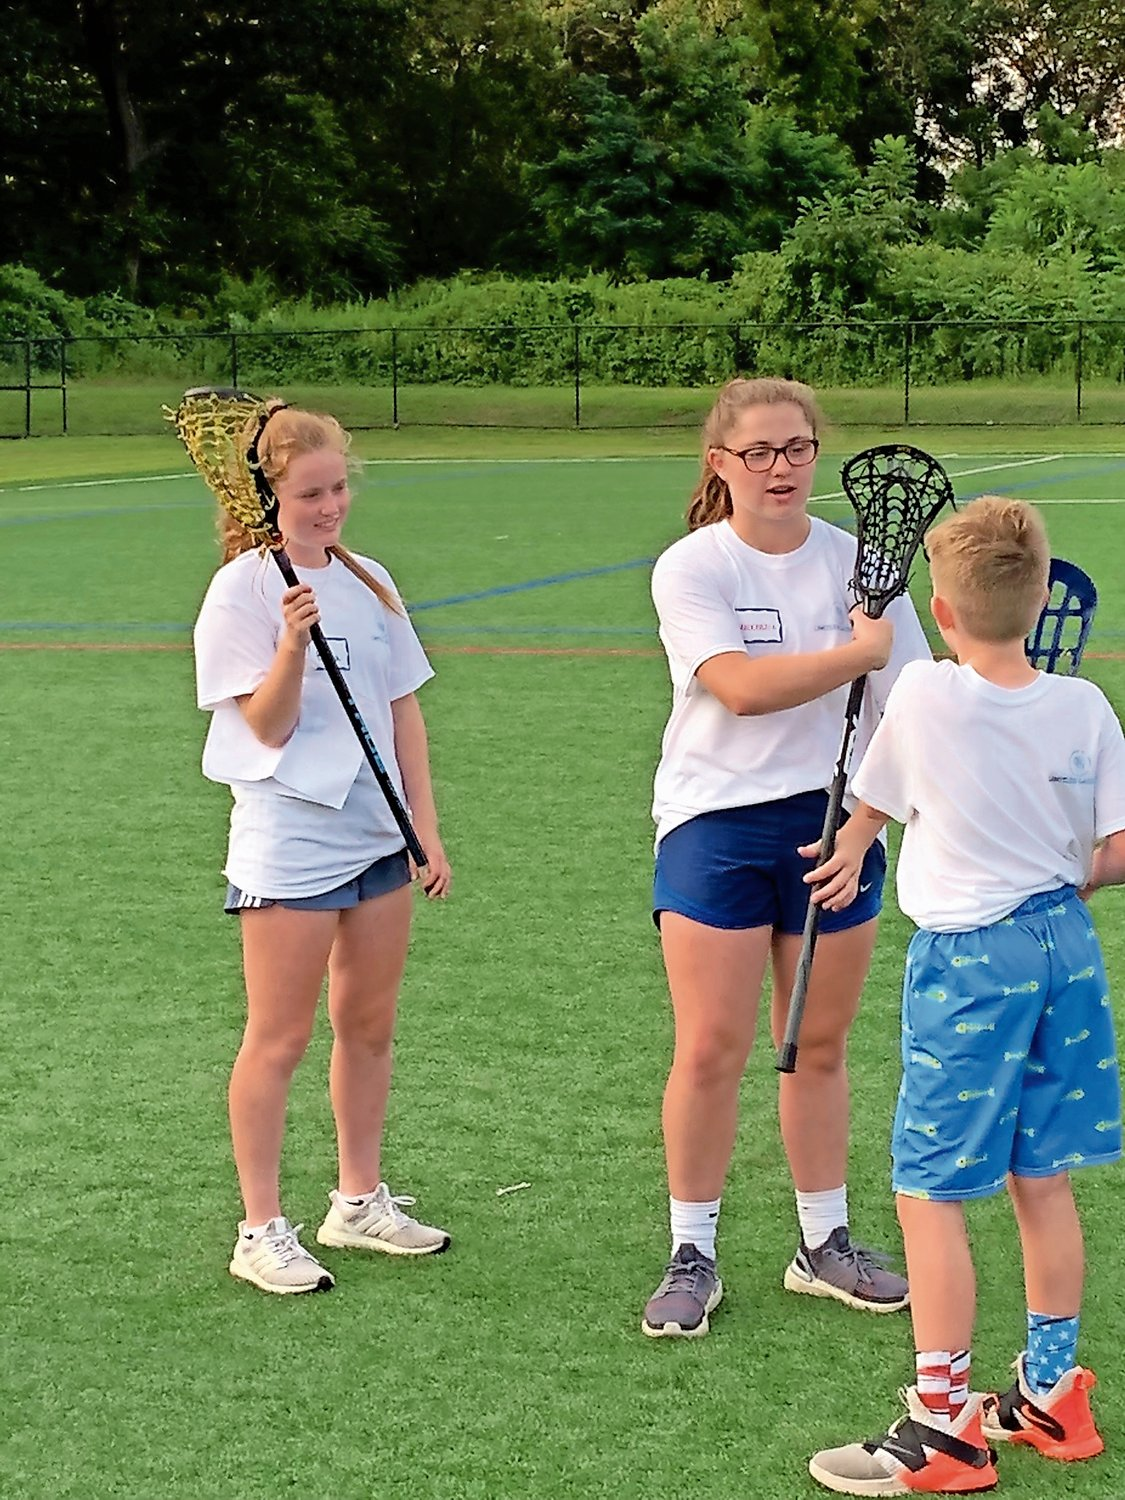 Emma Madden and Mackenzie Creagh teach a camper how to hold the lacrosse stick.